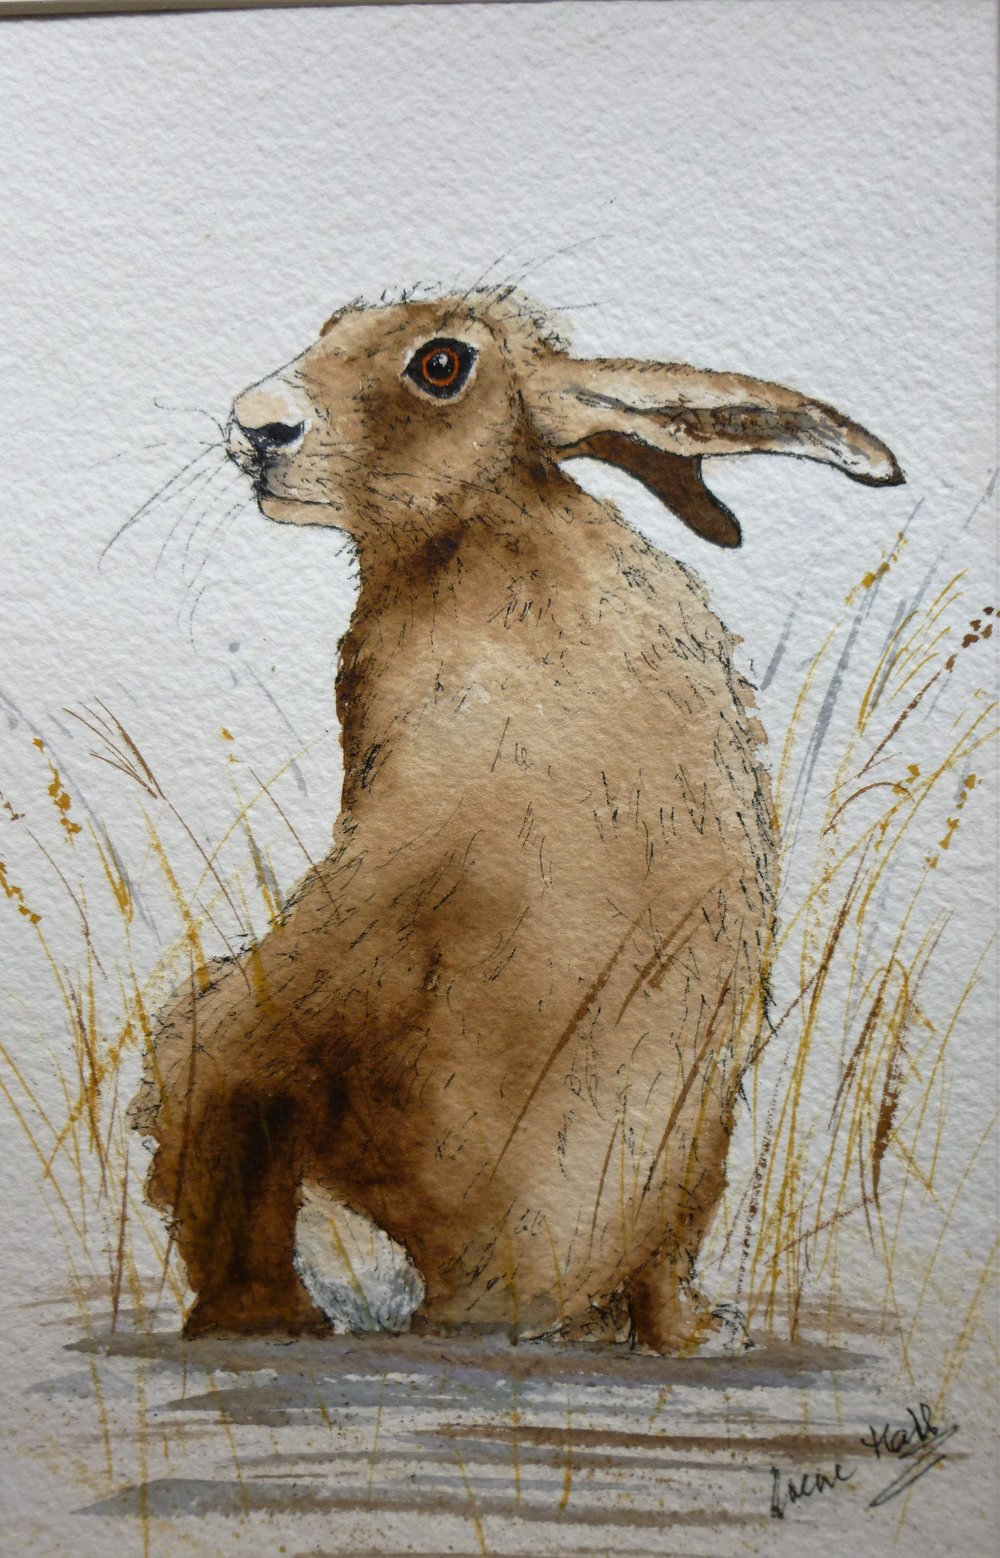 Hare's Looking at You!